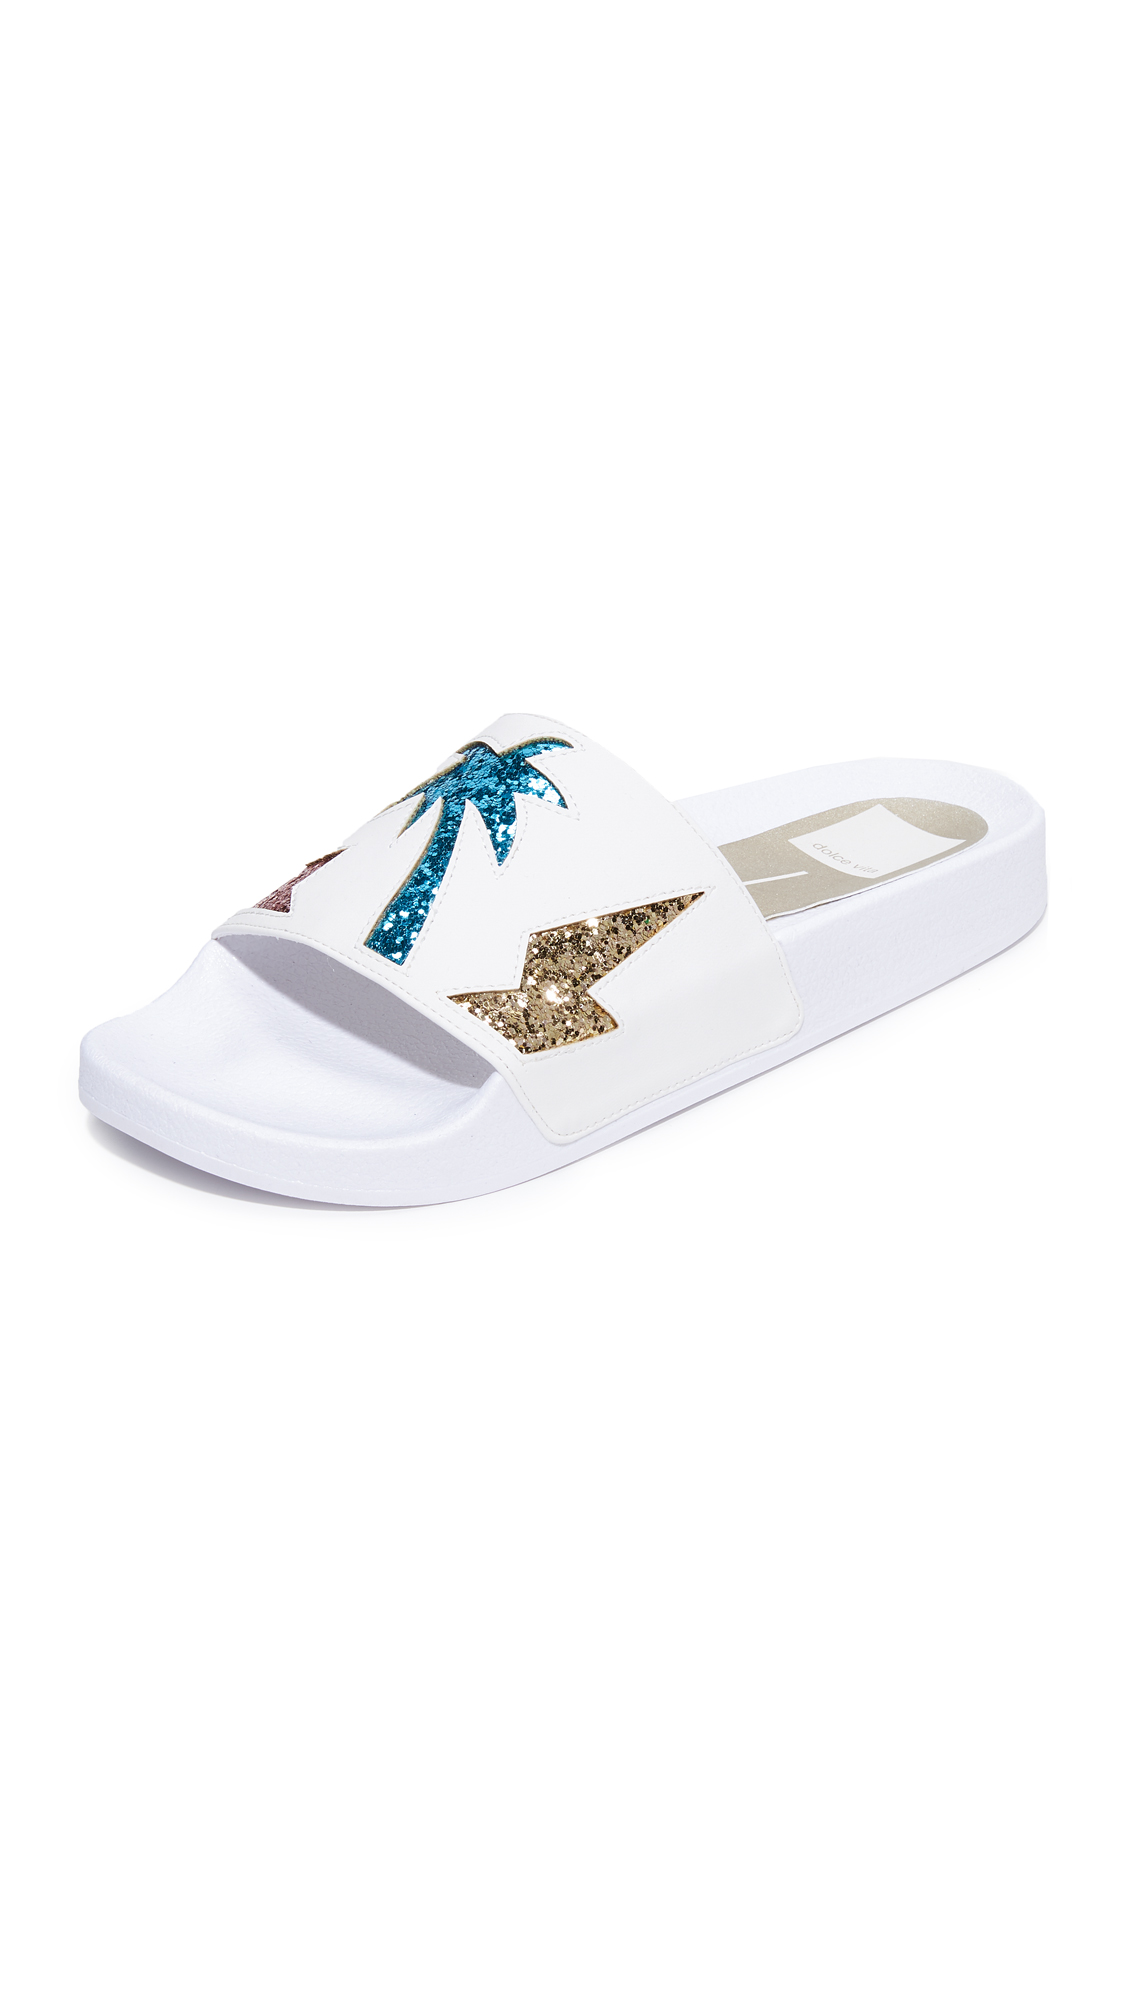 Dolce Vita Traci Slides - Metallic Multi